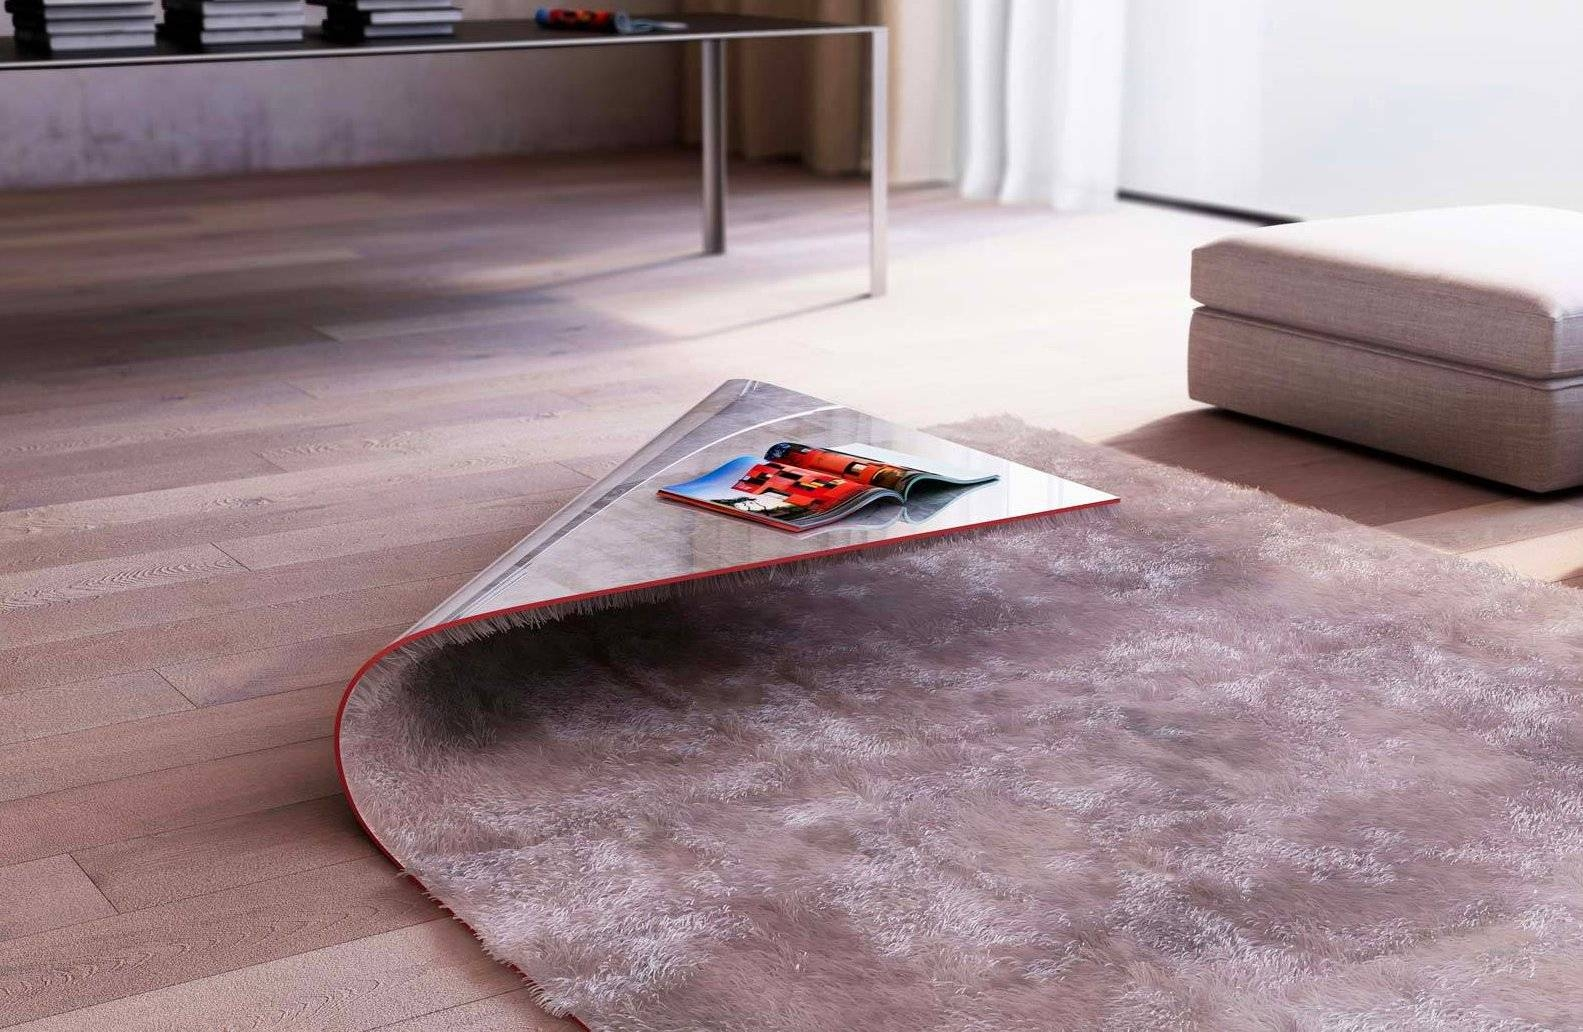 19 Unique Coffee Table Designs For A Very Special Coffee Time inside Unique Coffee Tables (Image 1 of 15)